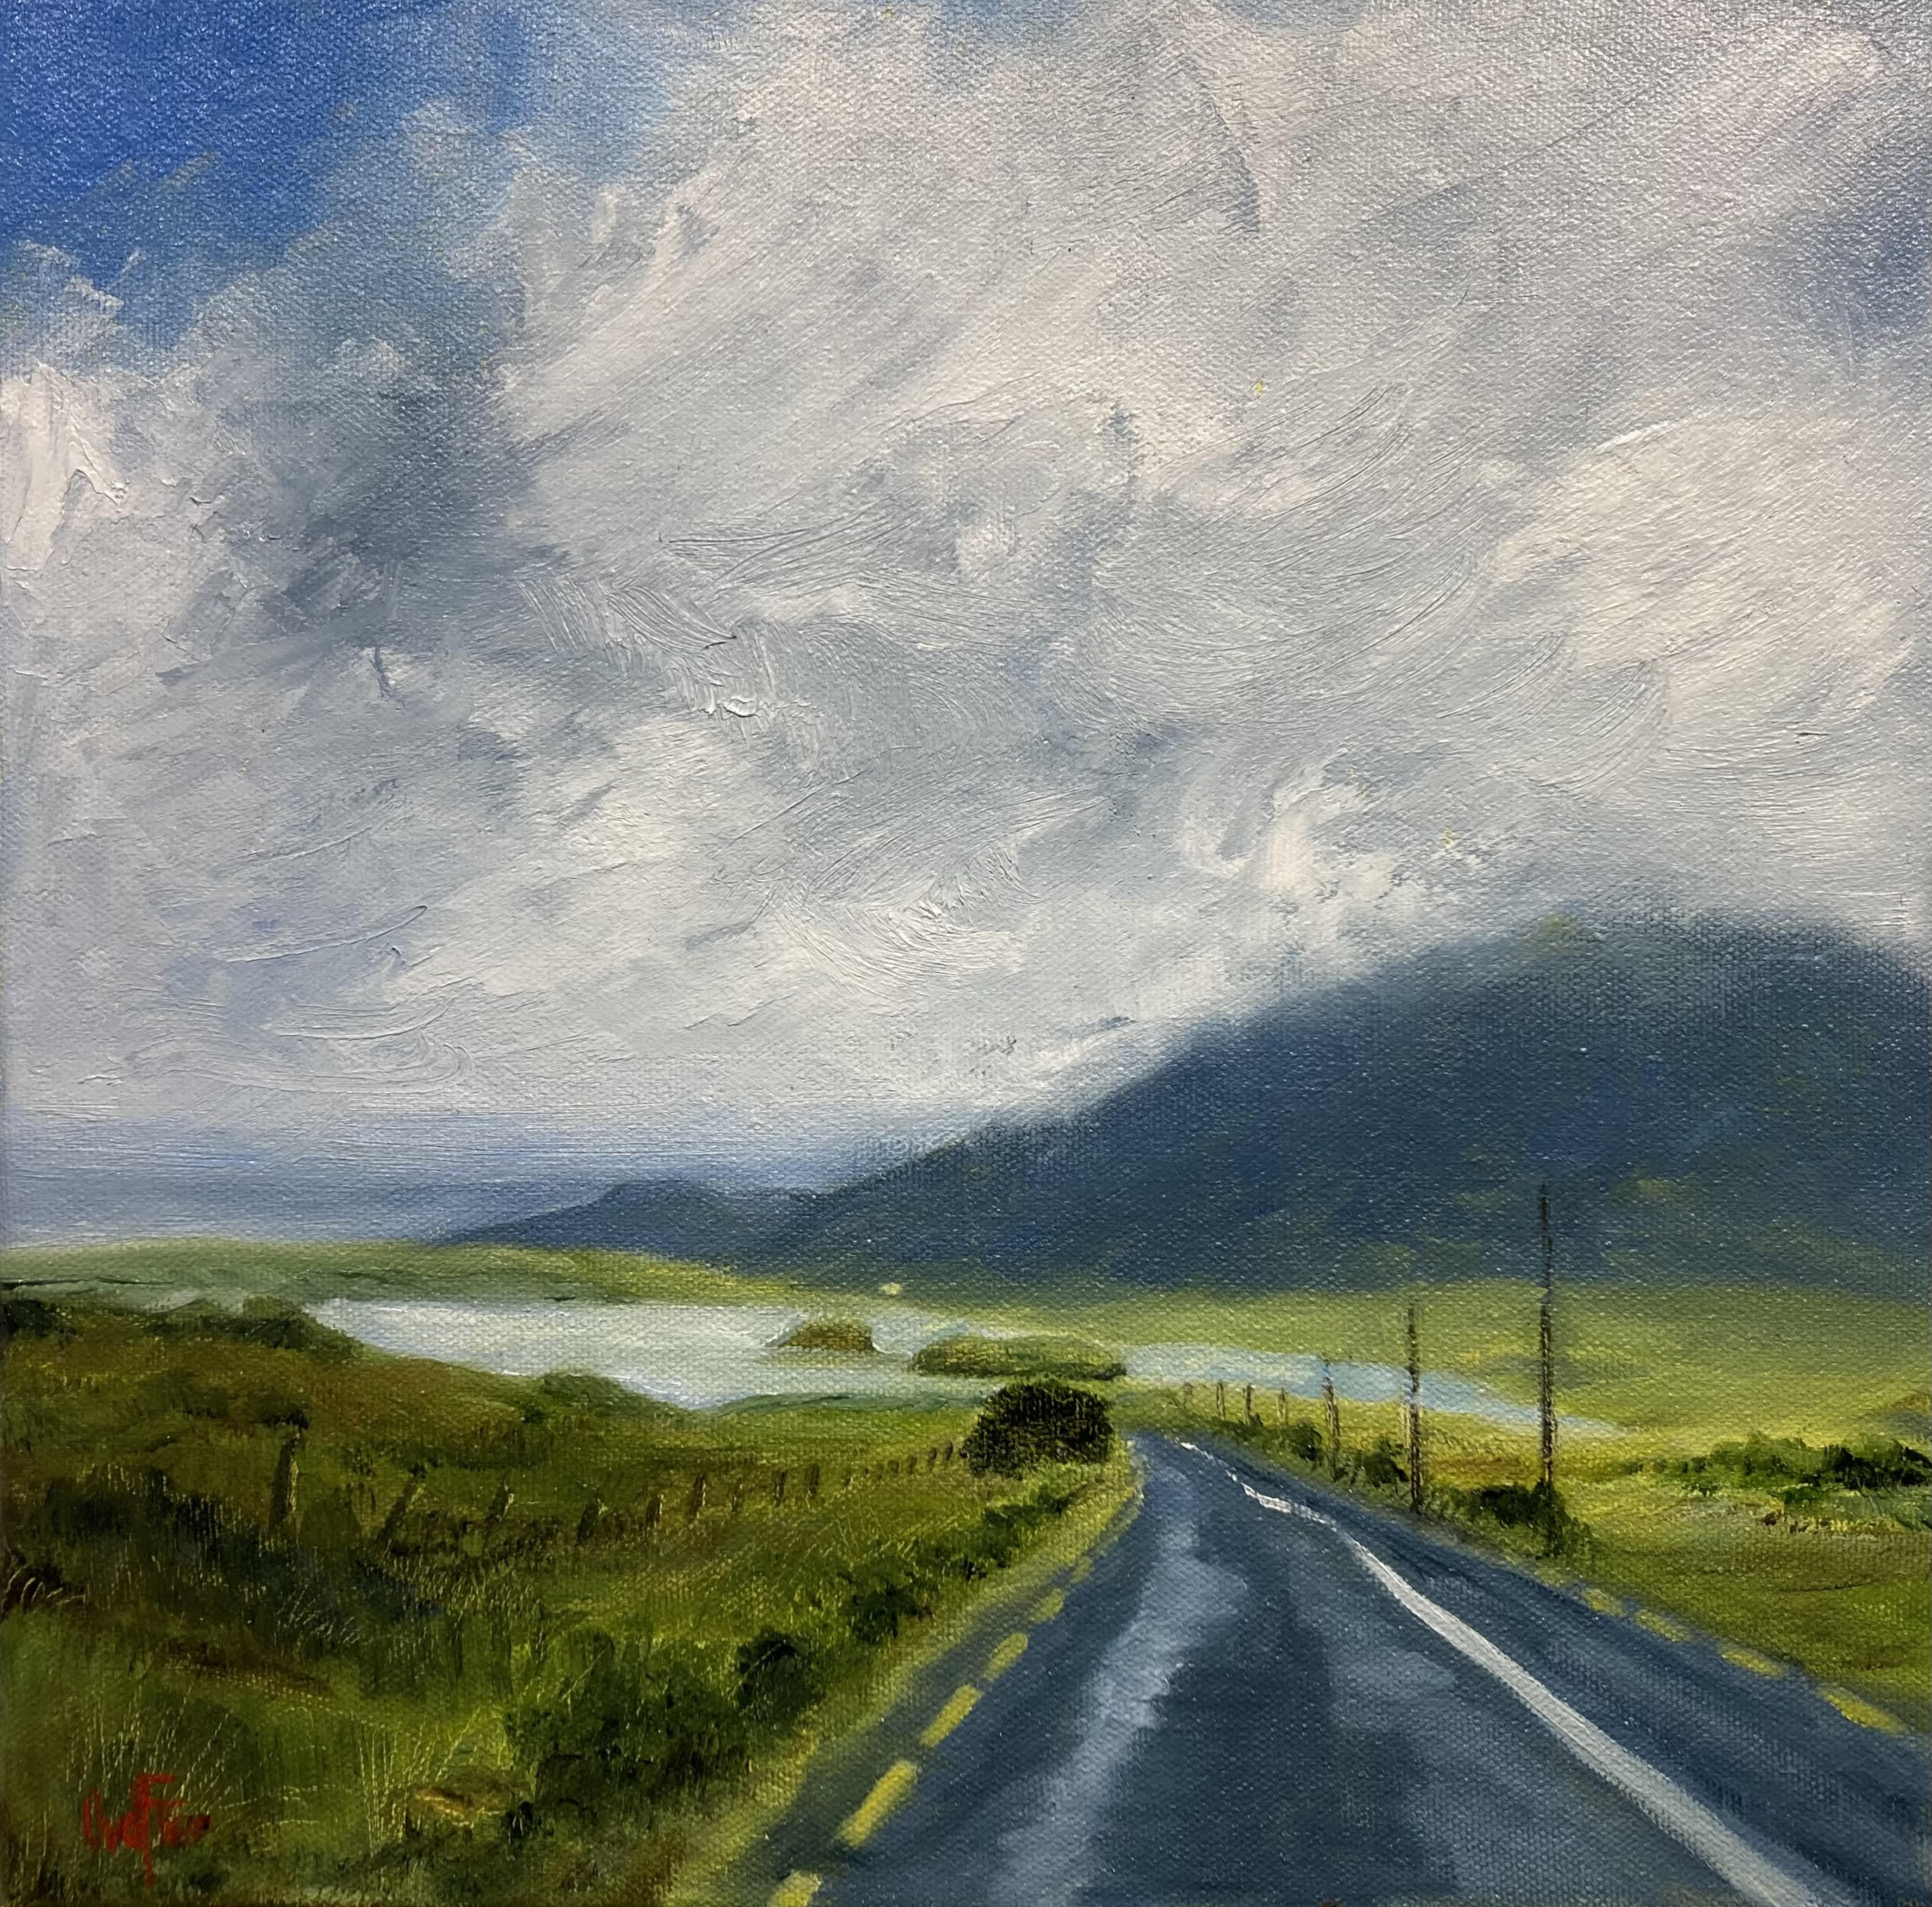 Approaching Lough Inagh by Olly van der Flier